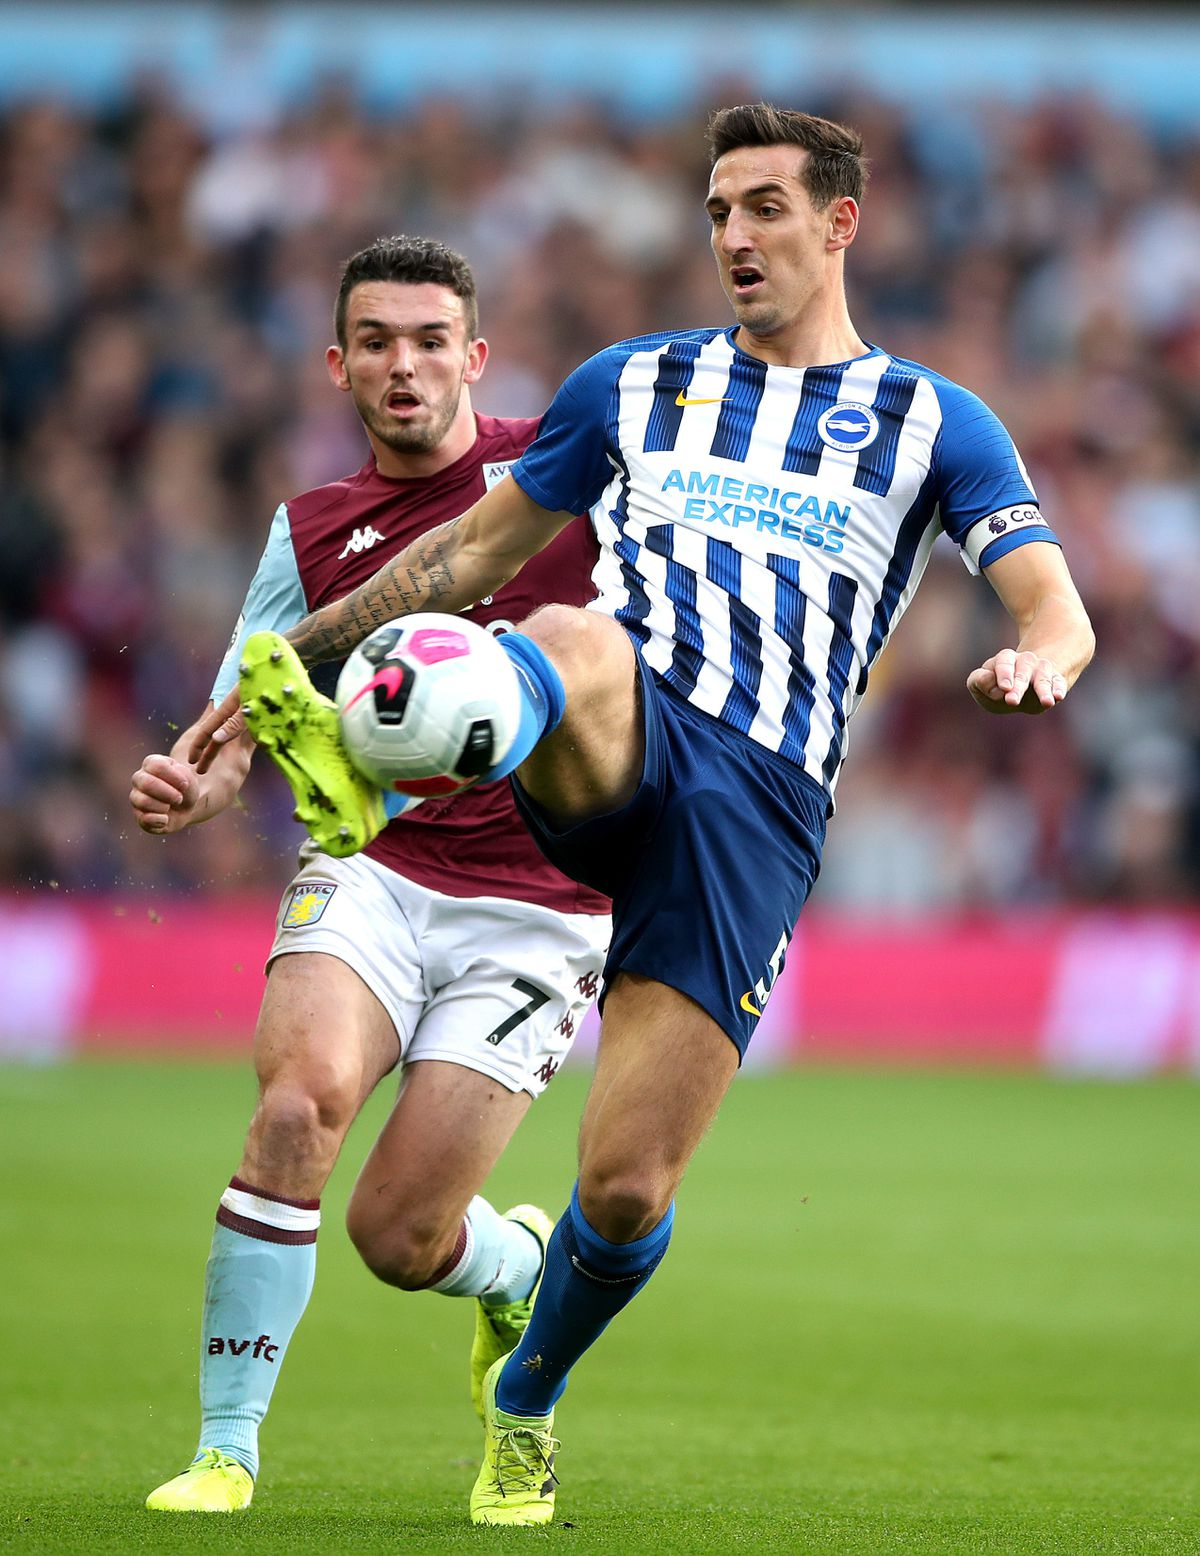 Aston Villa's John McGinn (left) and Brighton and Hove Albion's Lewis Dunk (right) battle for the ball